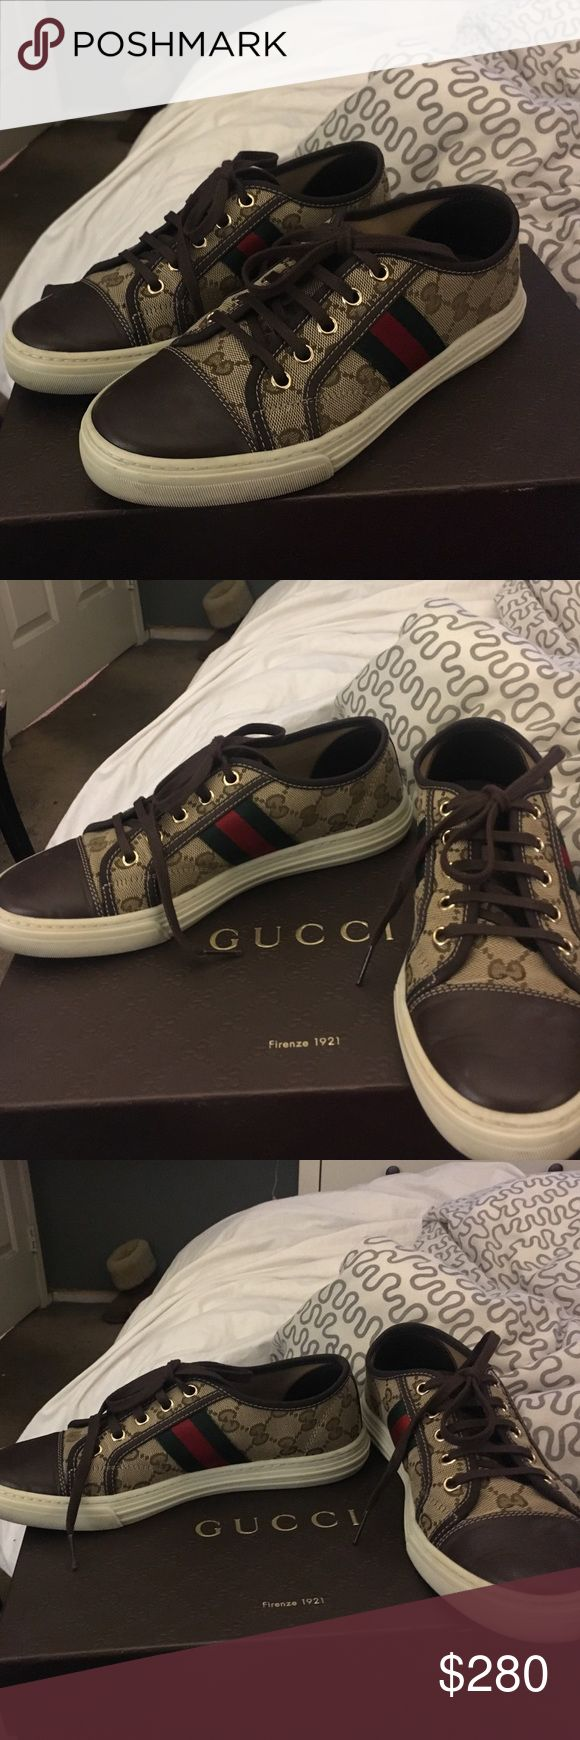 Women's Gucci low top sneakers. Gucci low top sneakers. With logo all over. Size 36. Worn a couple of times. Great condition, very clean. Just bottom of shoe looks like it's been worn. Otherwise looks good as new. Willing to negotiate. Comes with box and dust bag. Gucci Shoes Sneakers